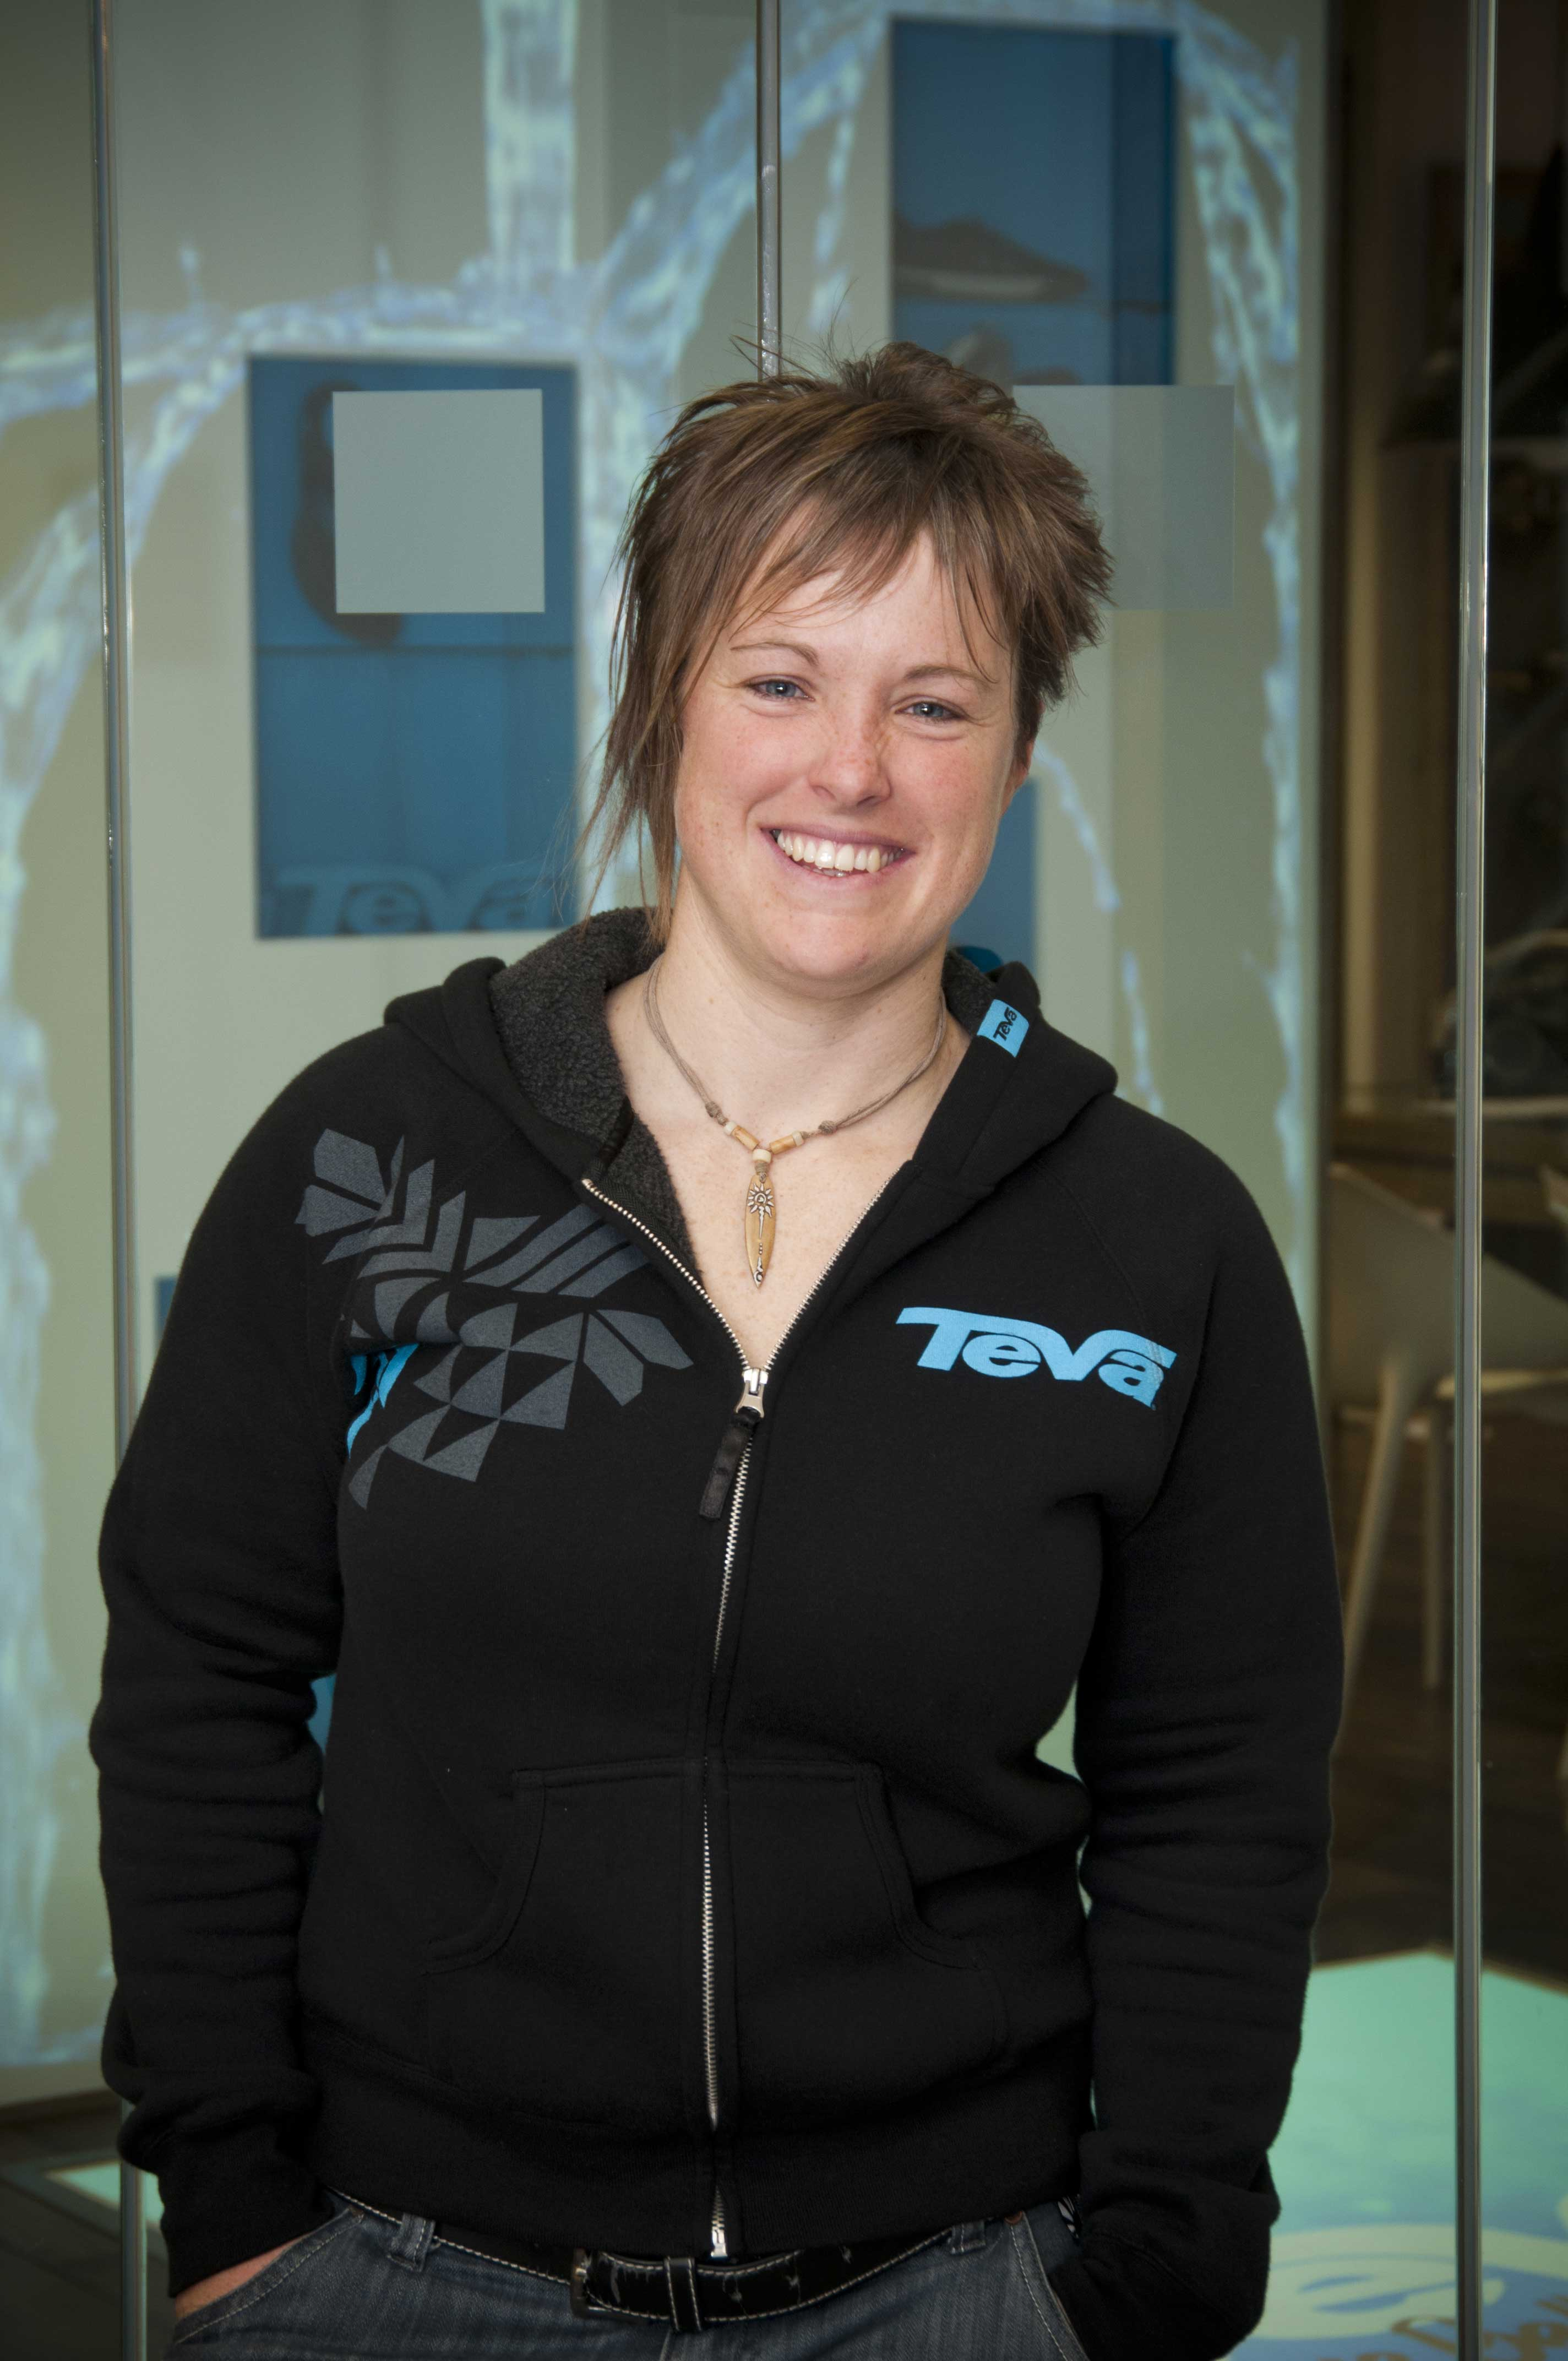 As part of her association with Teva, O'Hara will compete in the 2012 Teva Mountain Games in Vail, Colorado.